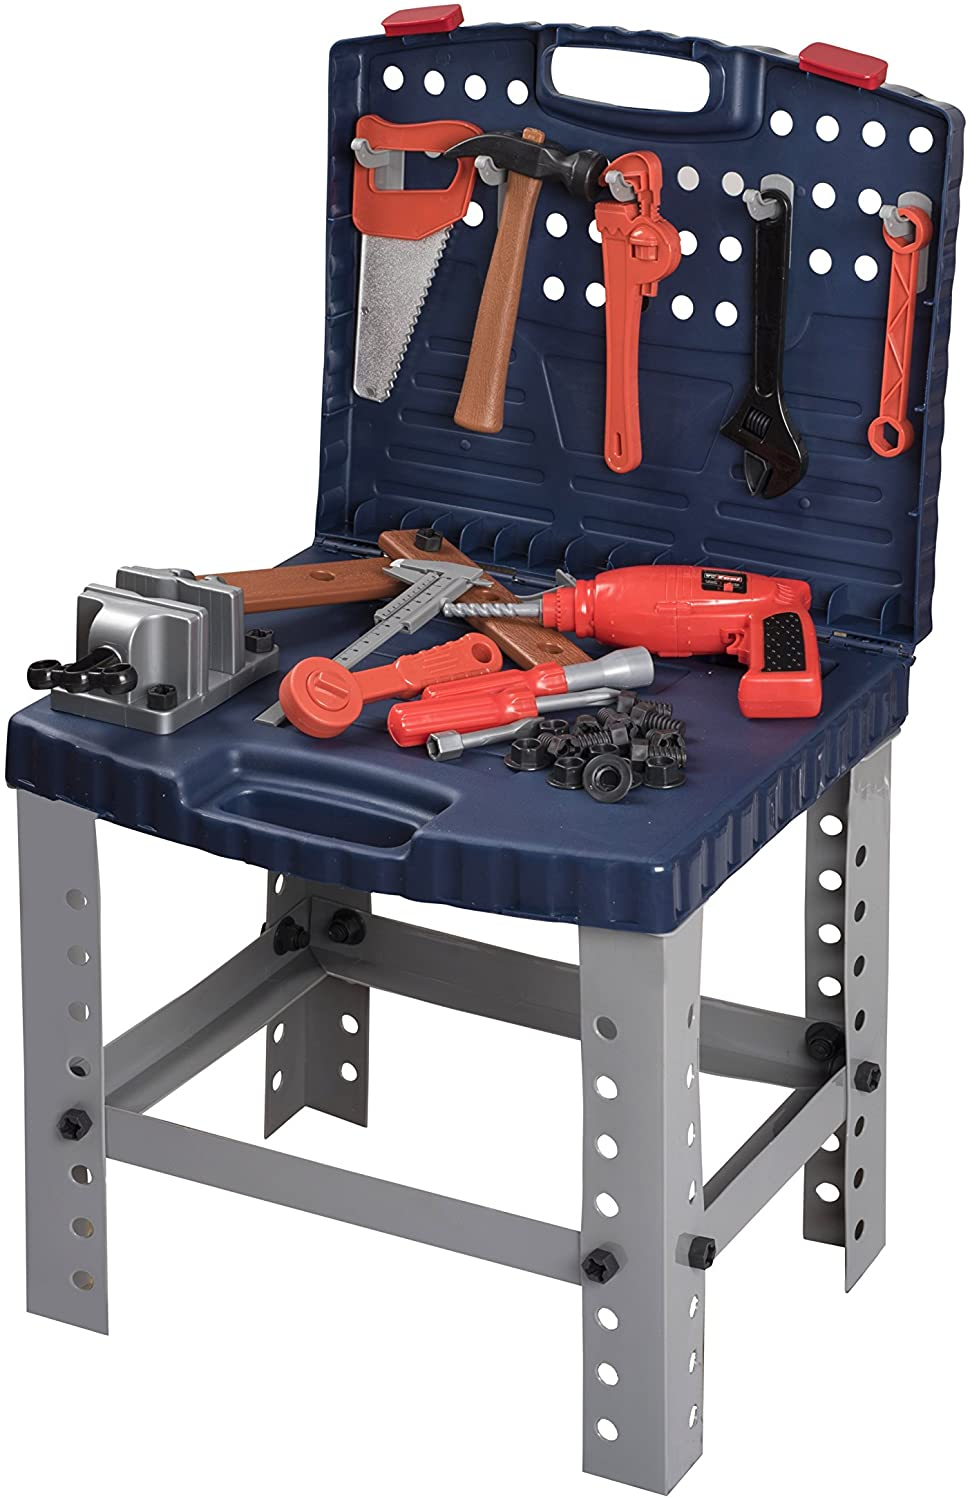 Childrens Pretend Play Toy Workbench Tool Set complete with Accessories